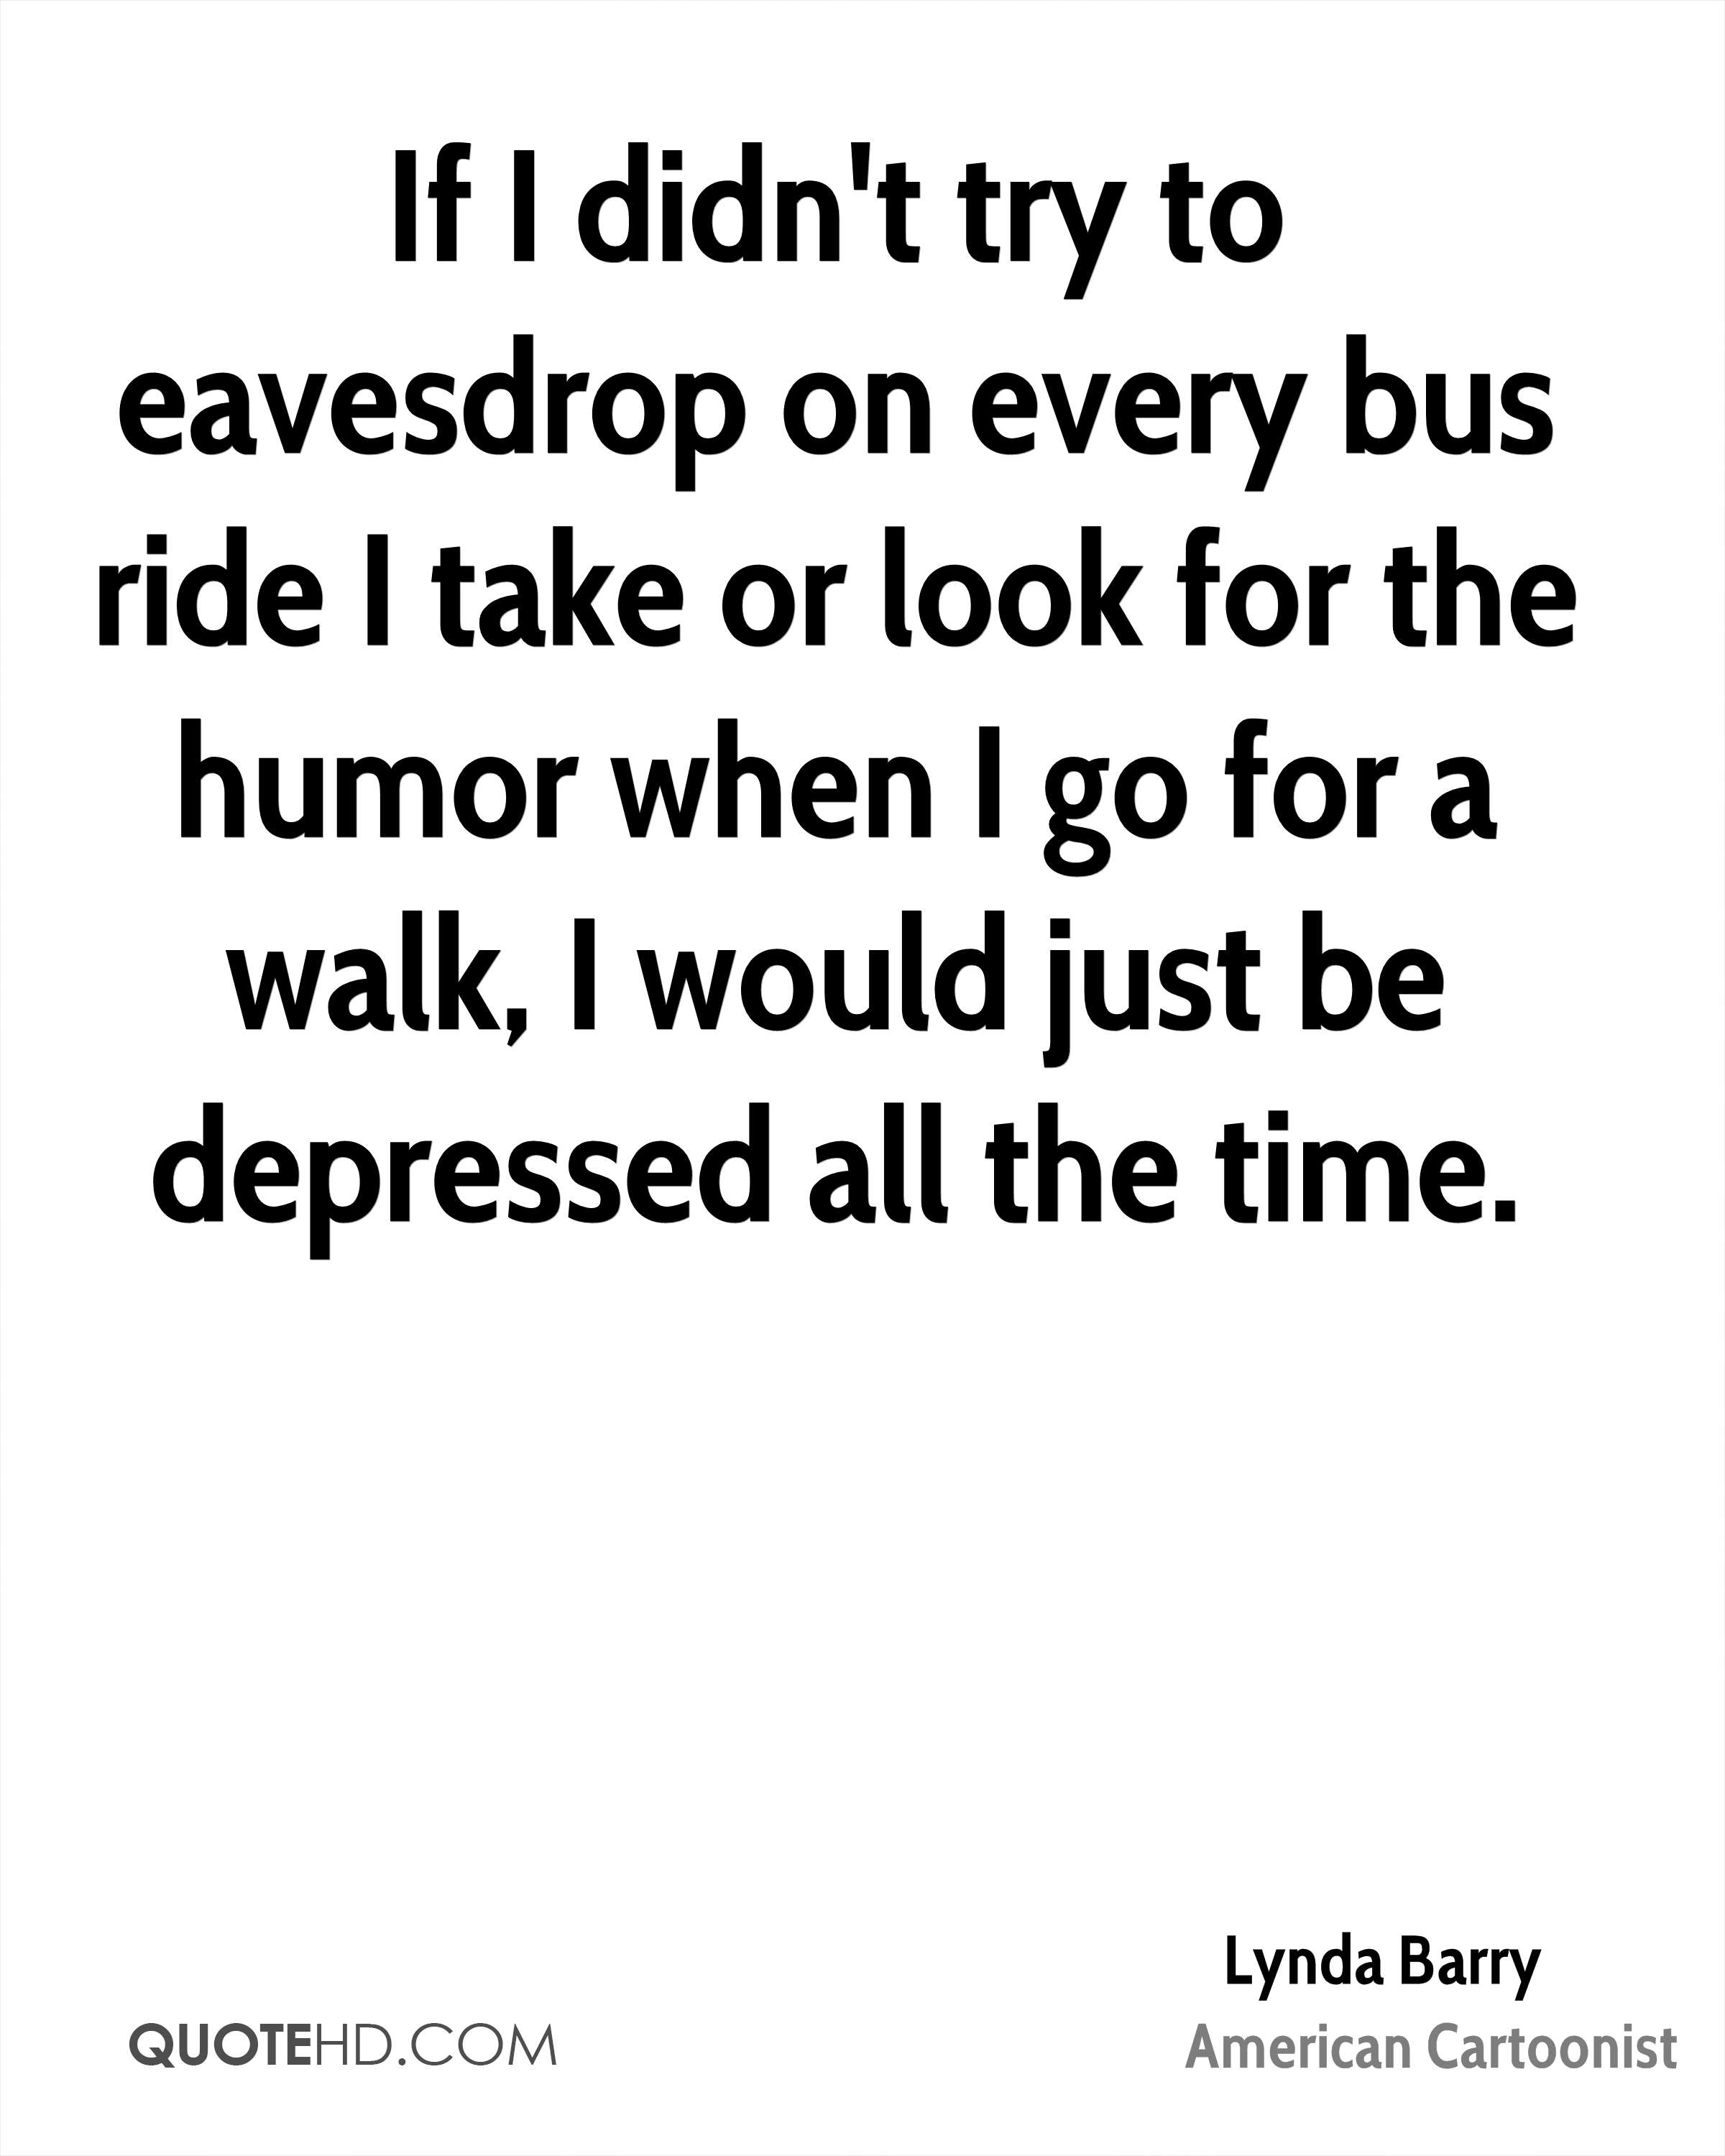 If I didn't try to eavesdrop on every bus ride I take or look for the humor when I go for a walk, I would just be depressed all the time.